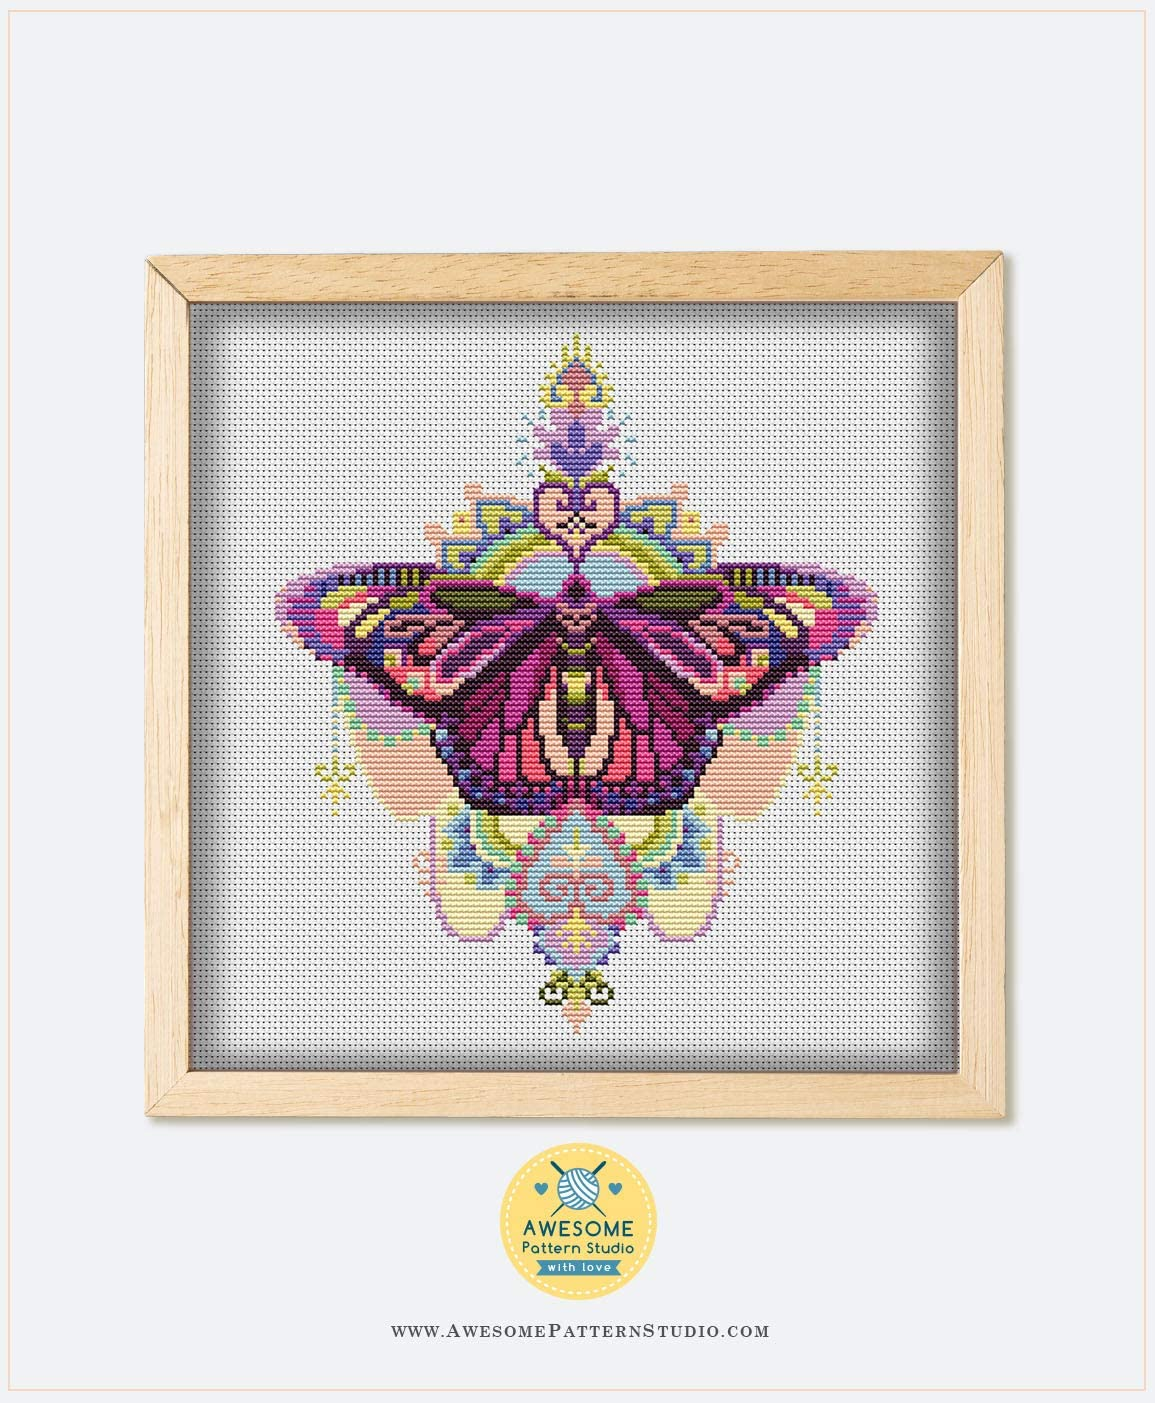 Needles Fabrick and 4 Printed Color Schemes Inside Threads Embroidery Pattern Kit Mandala Butterfly K169 Counted Cross Stitch KIT#2